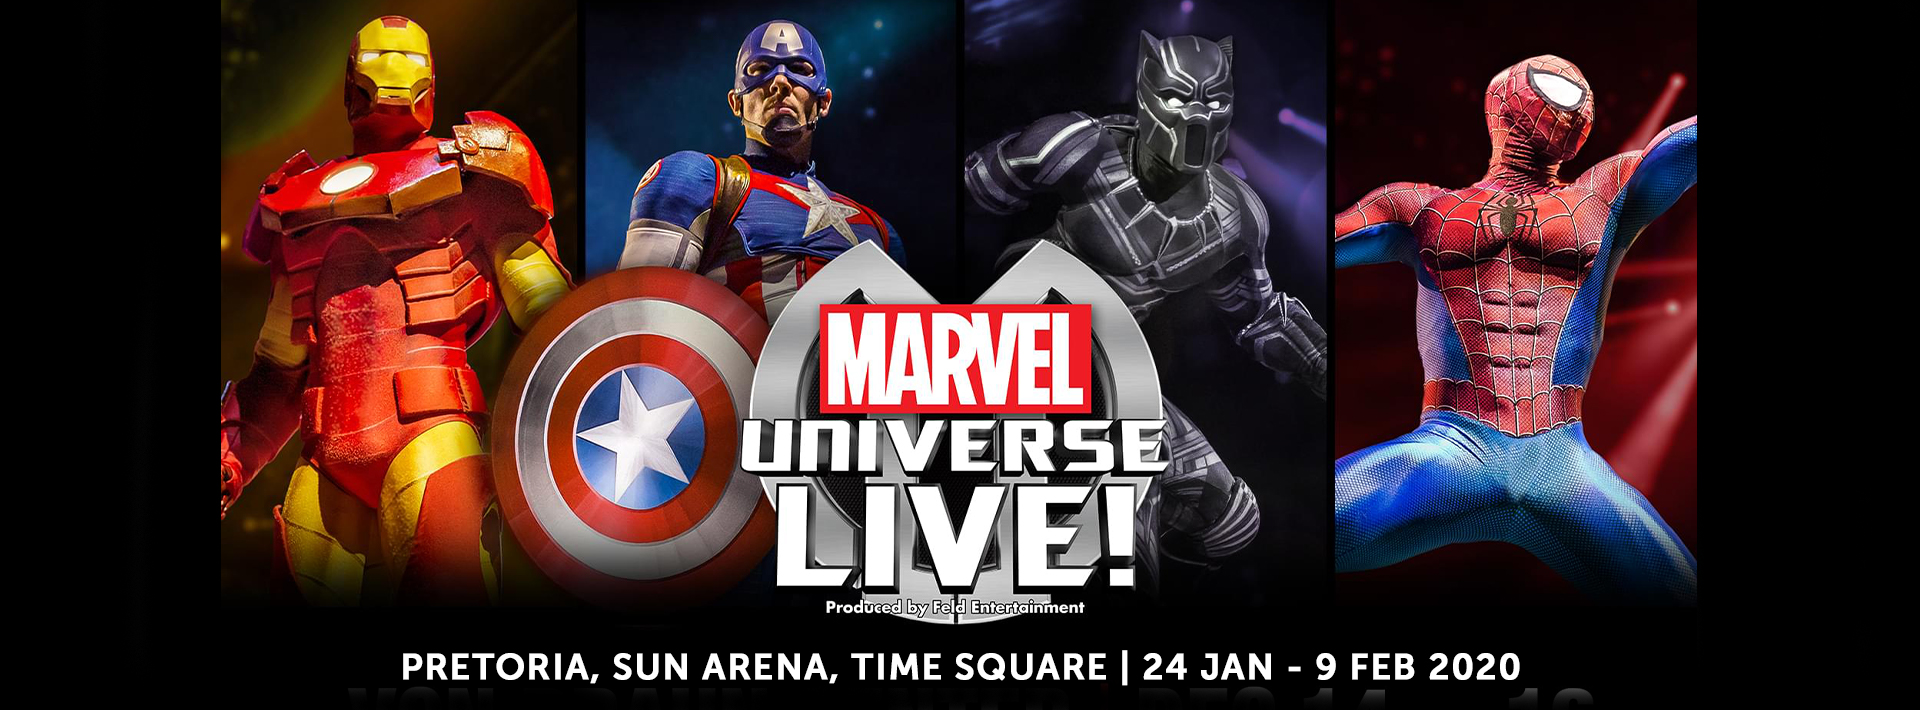 Homepage_Banners_MARVEL2020_